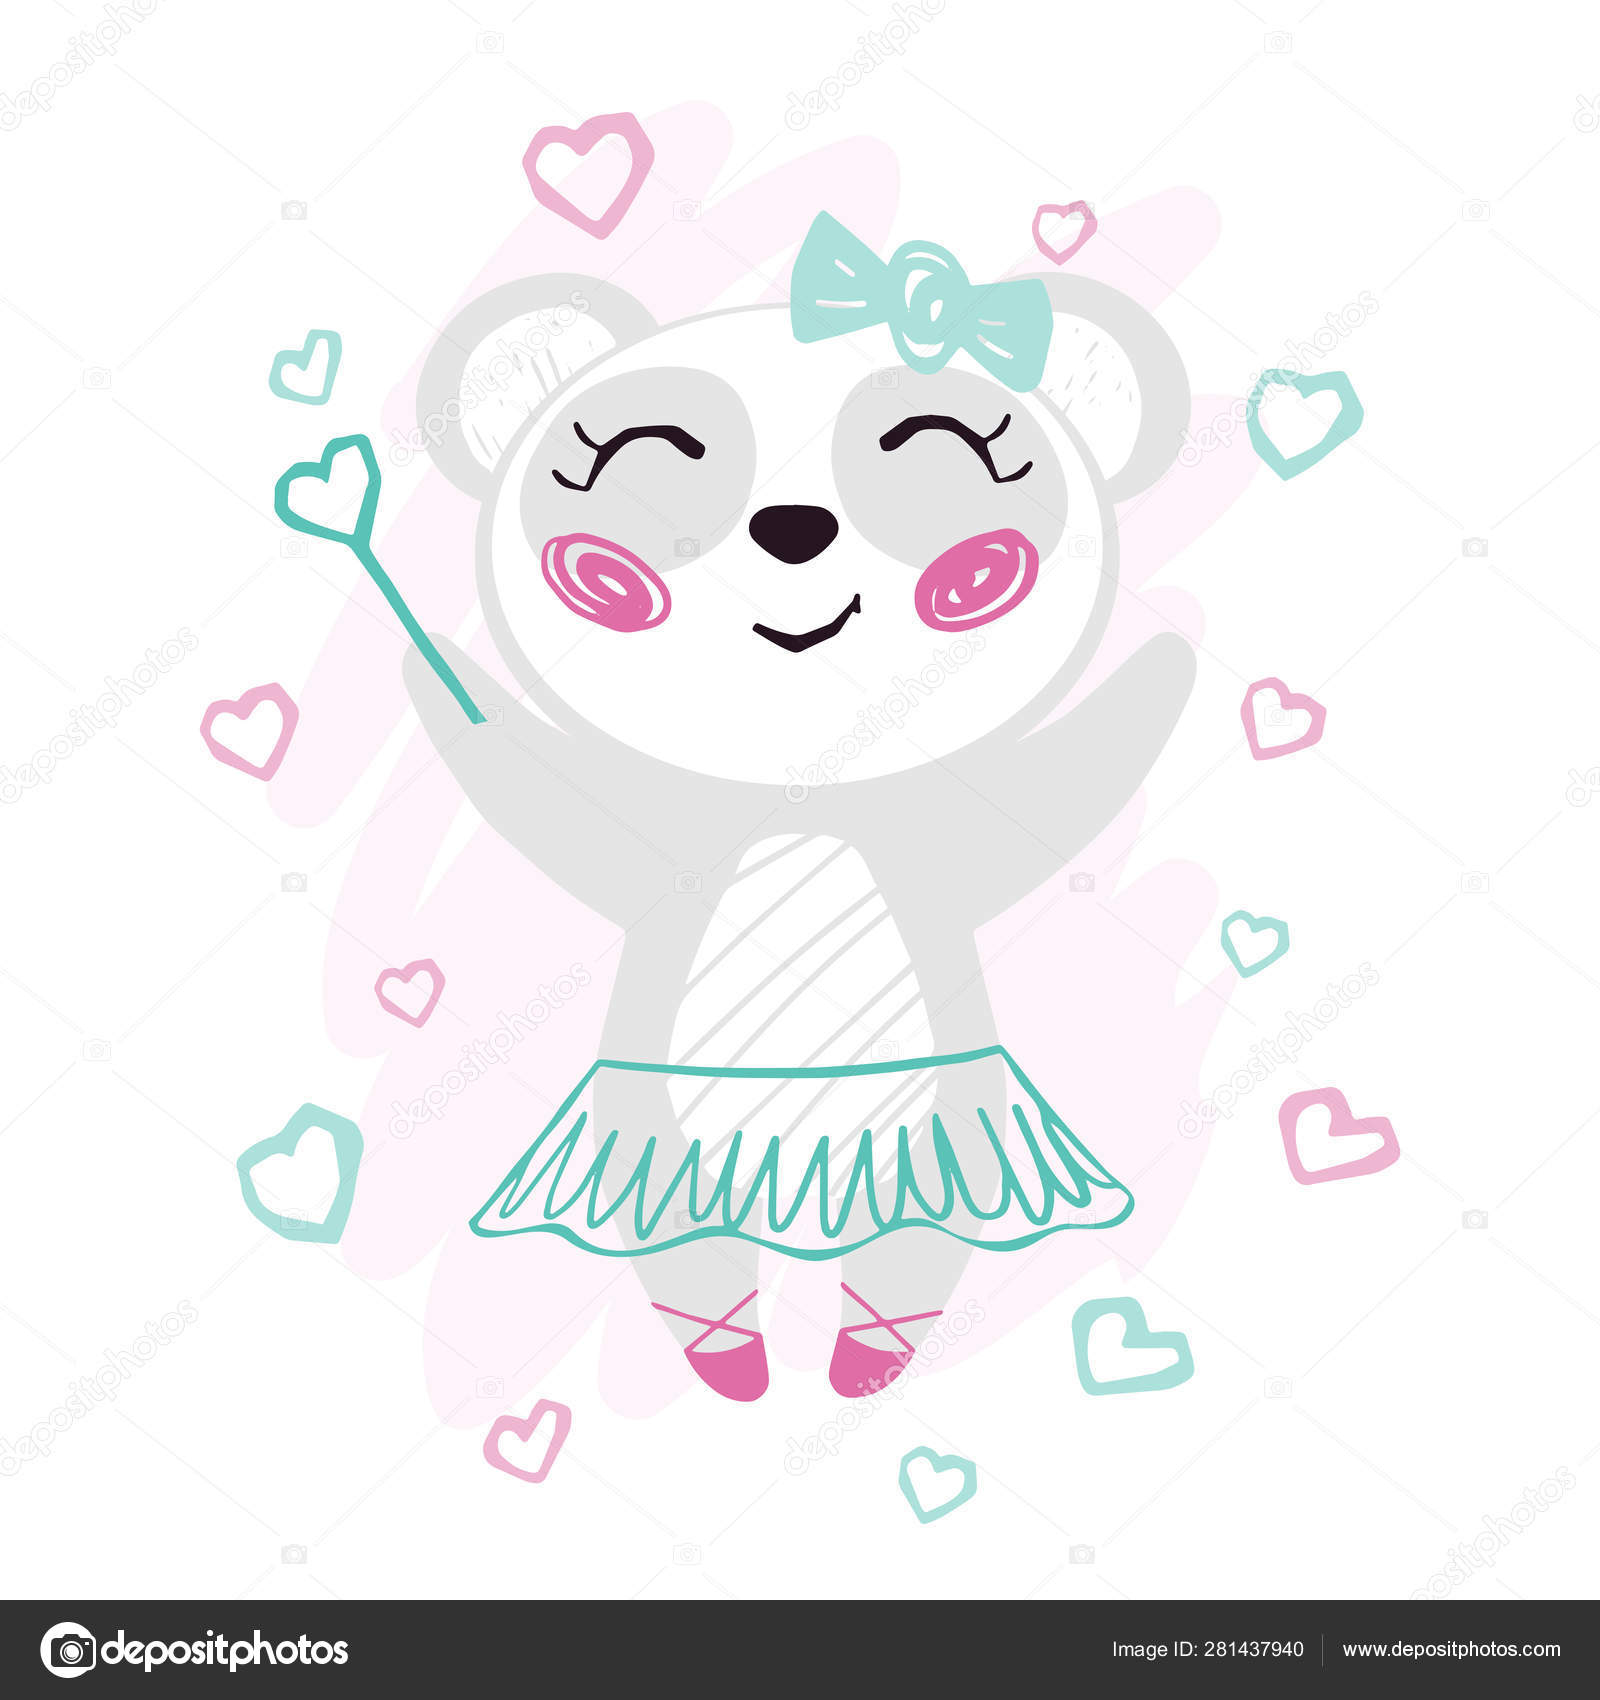 Panda Baby Girl Cute Print Sweet Bear With Magic Wand Bow Ballet Tutu Pointe Shoes Stock Vector C Nordfox 281437940